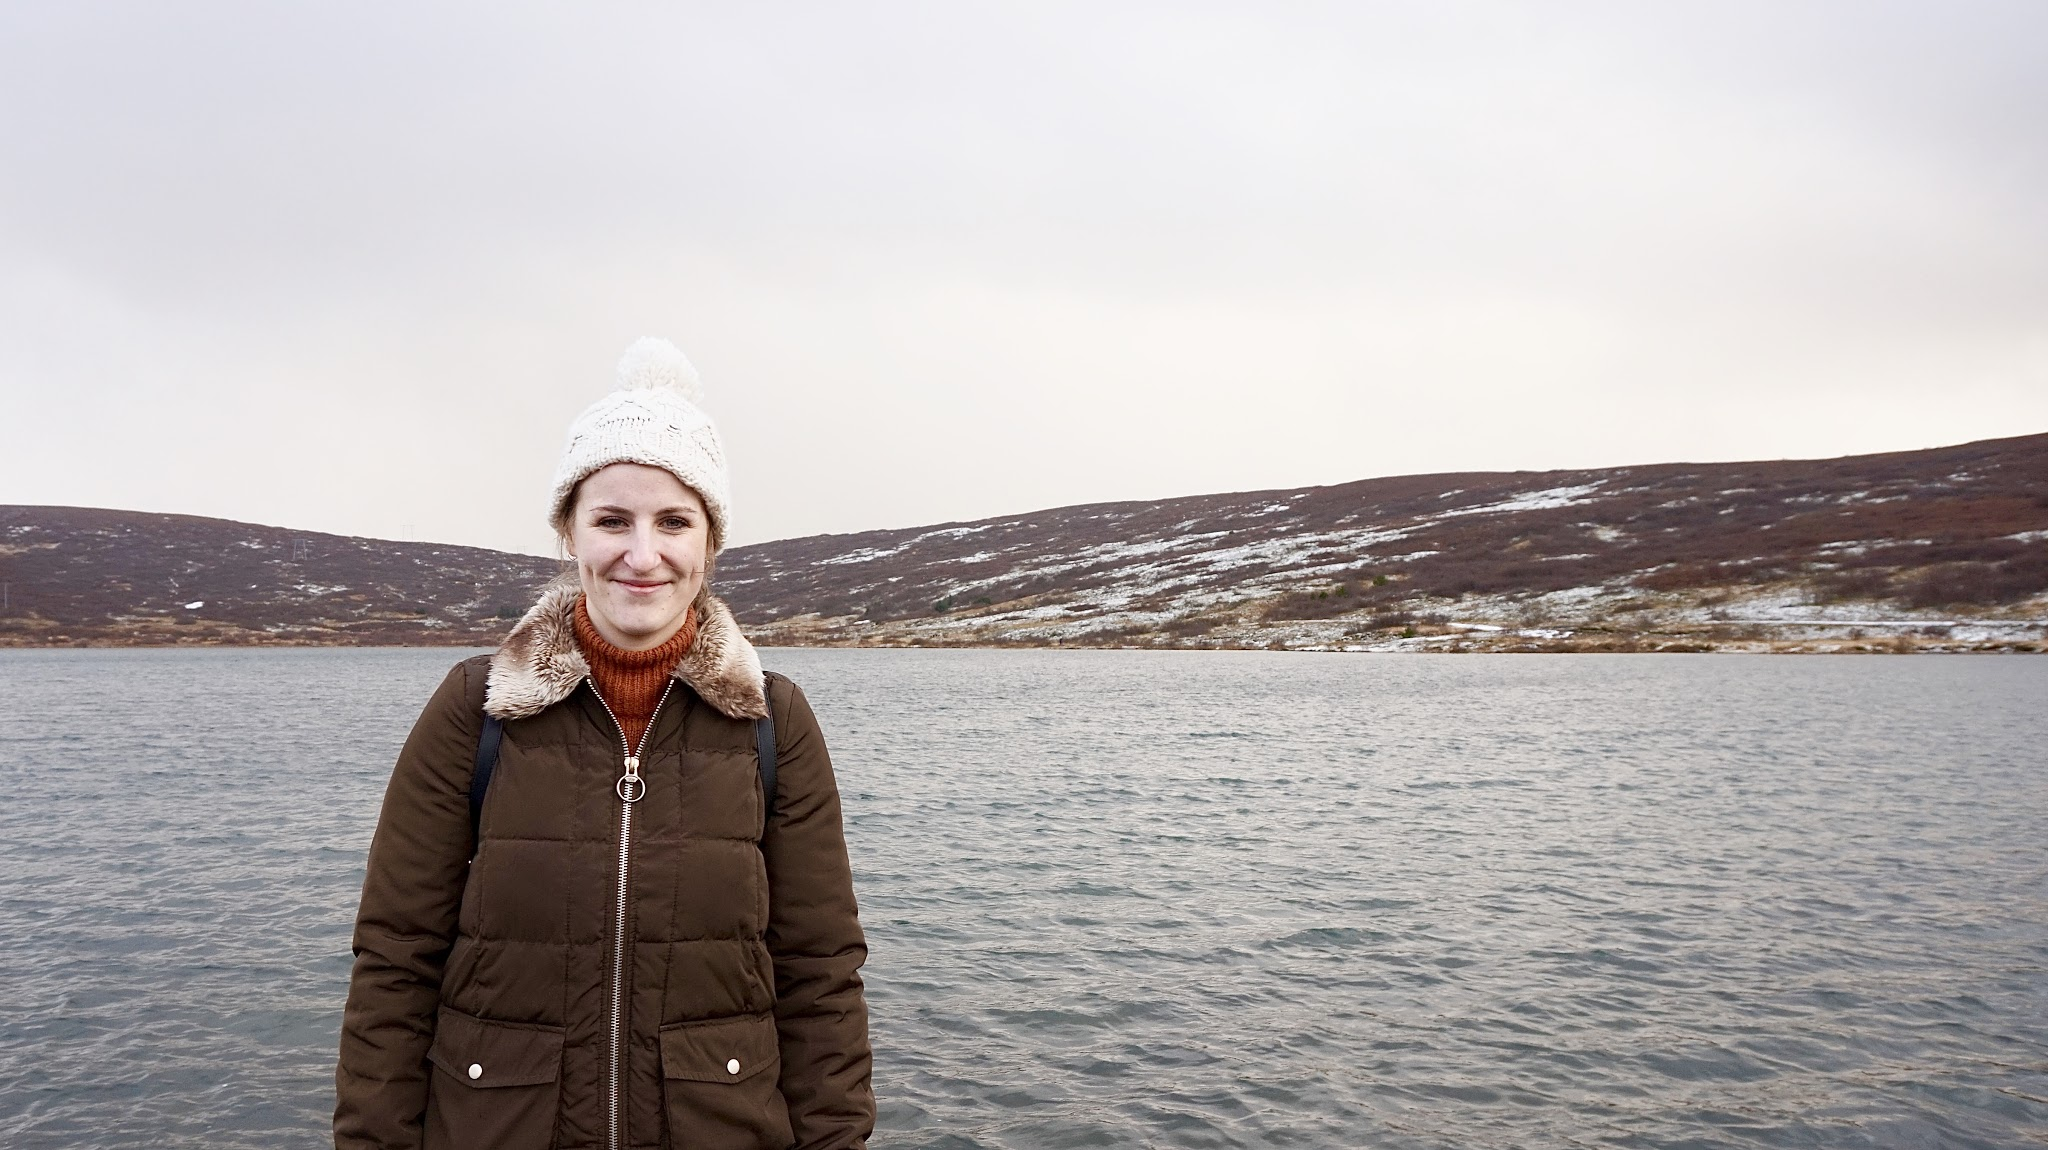 smiling woman in a bobble hat in front of a lake